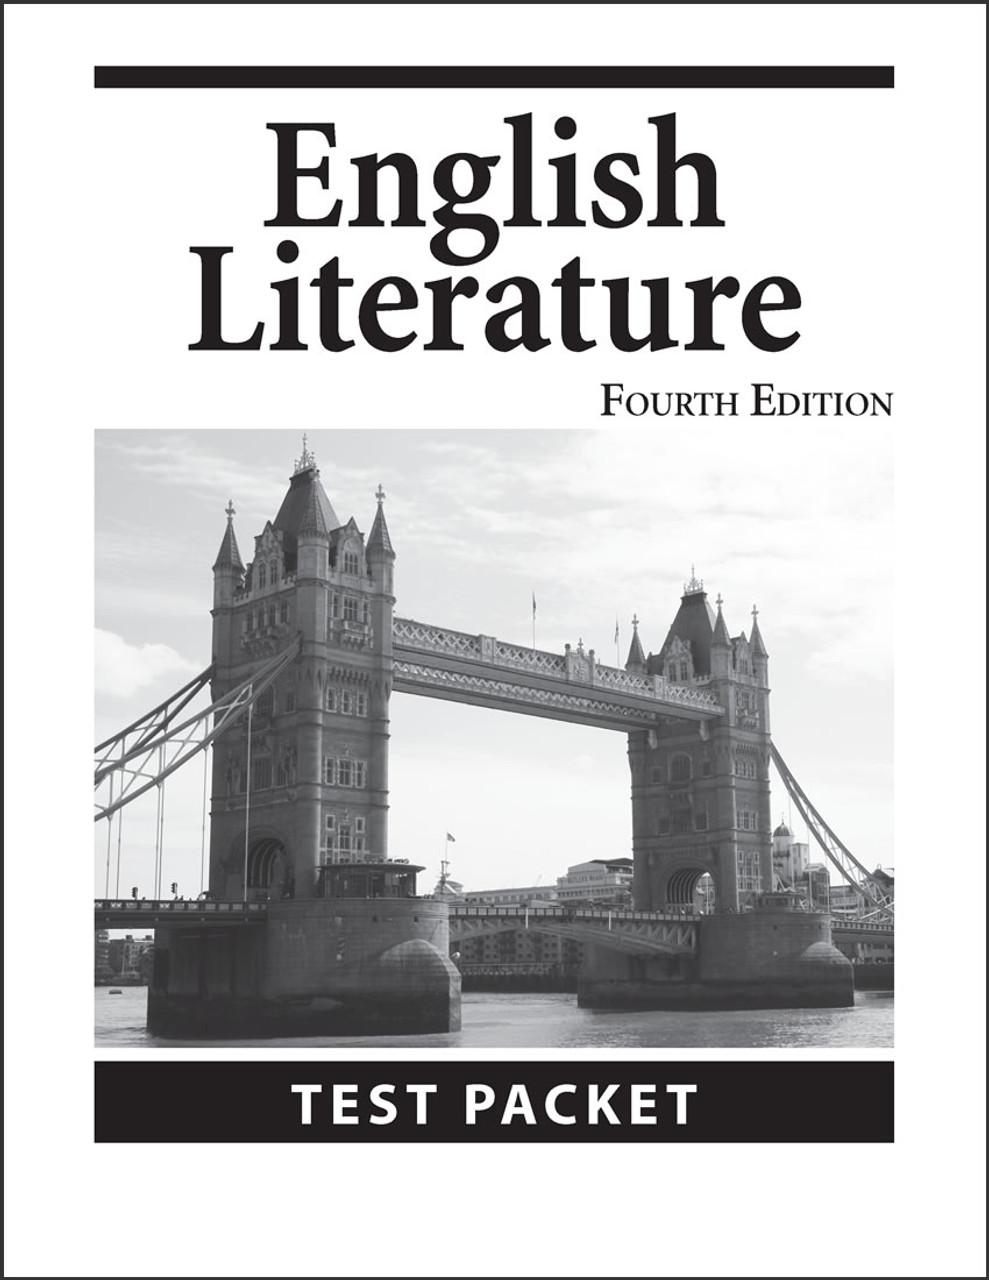 English Literature, 4th edition - Test Packet